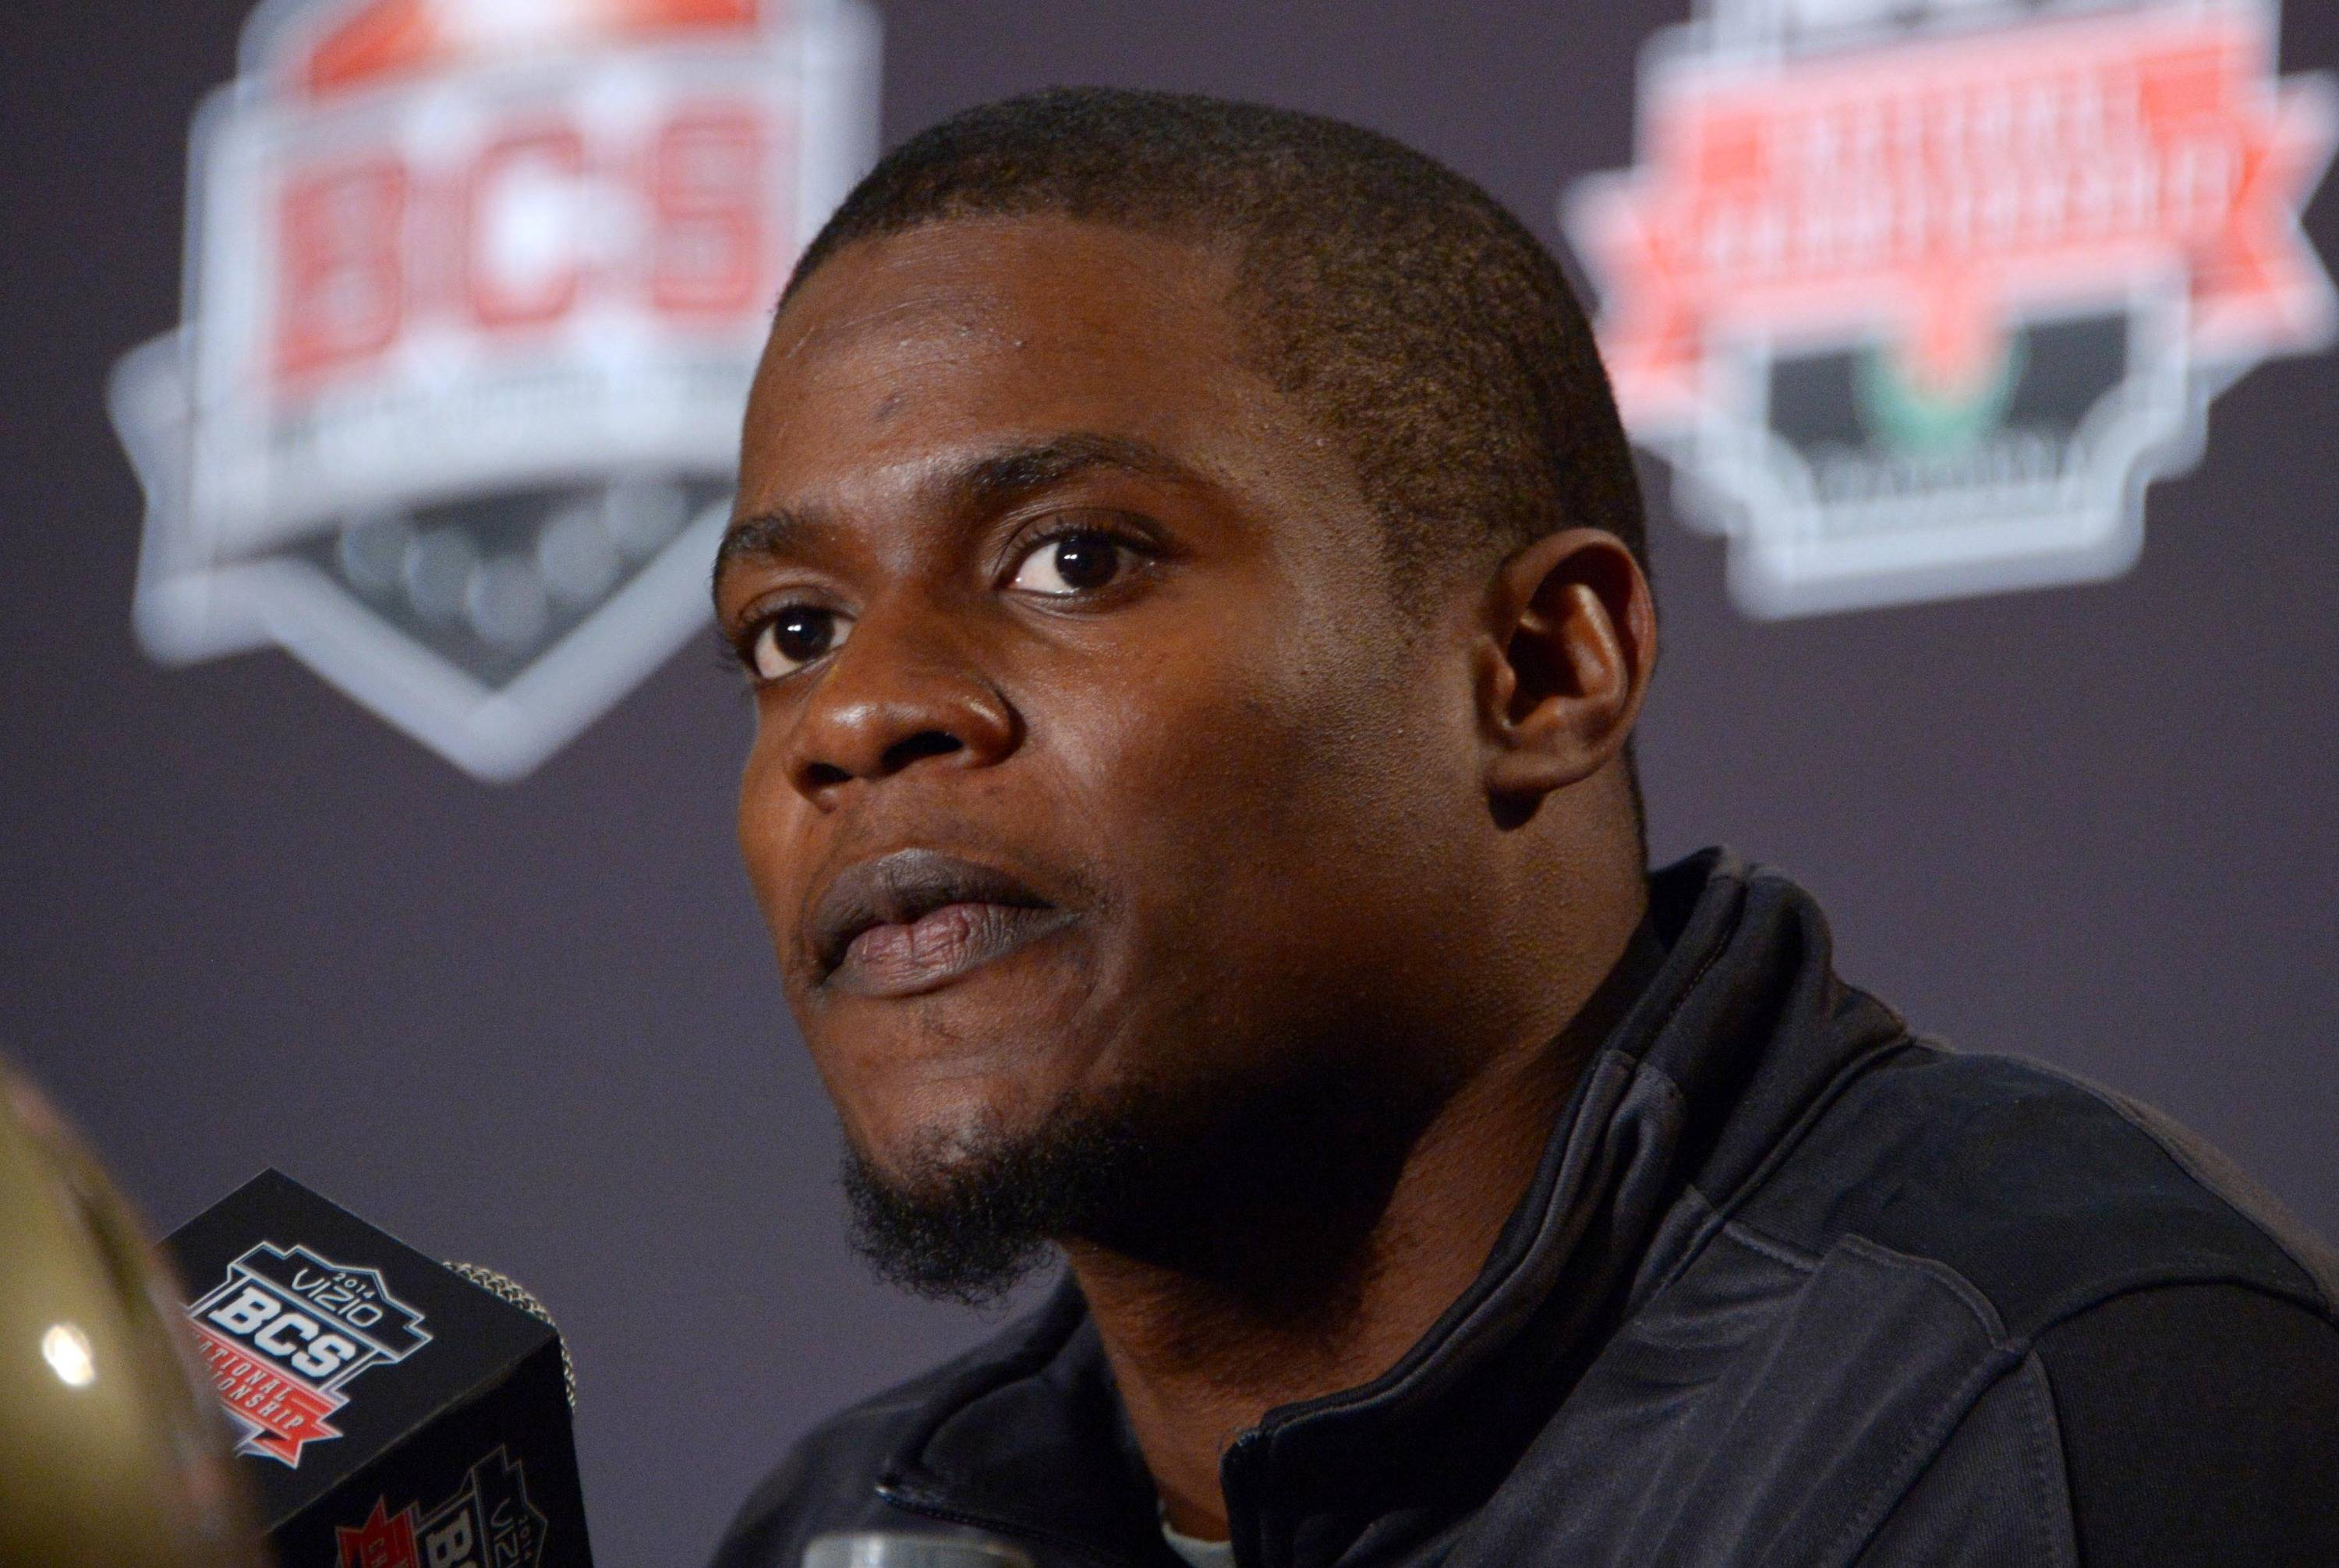 Florida State Seminoles cornerback Lamarcus Joyner at the 2014 BCS National Championship press conference at Newport Beach Marriott. Mandatory Credit: Kirby Lee-USA TODAY Sports